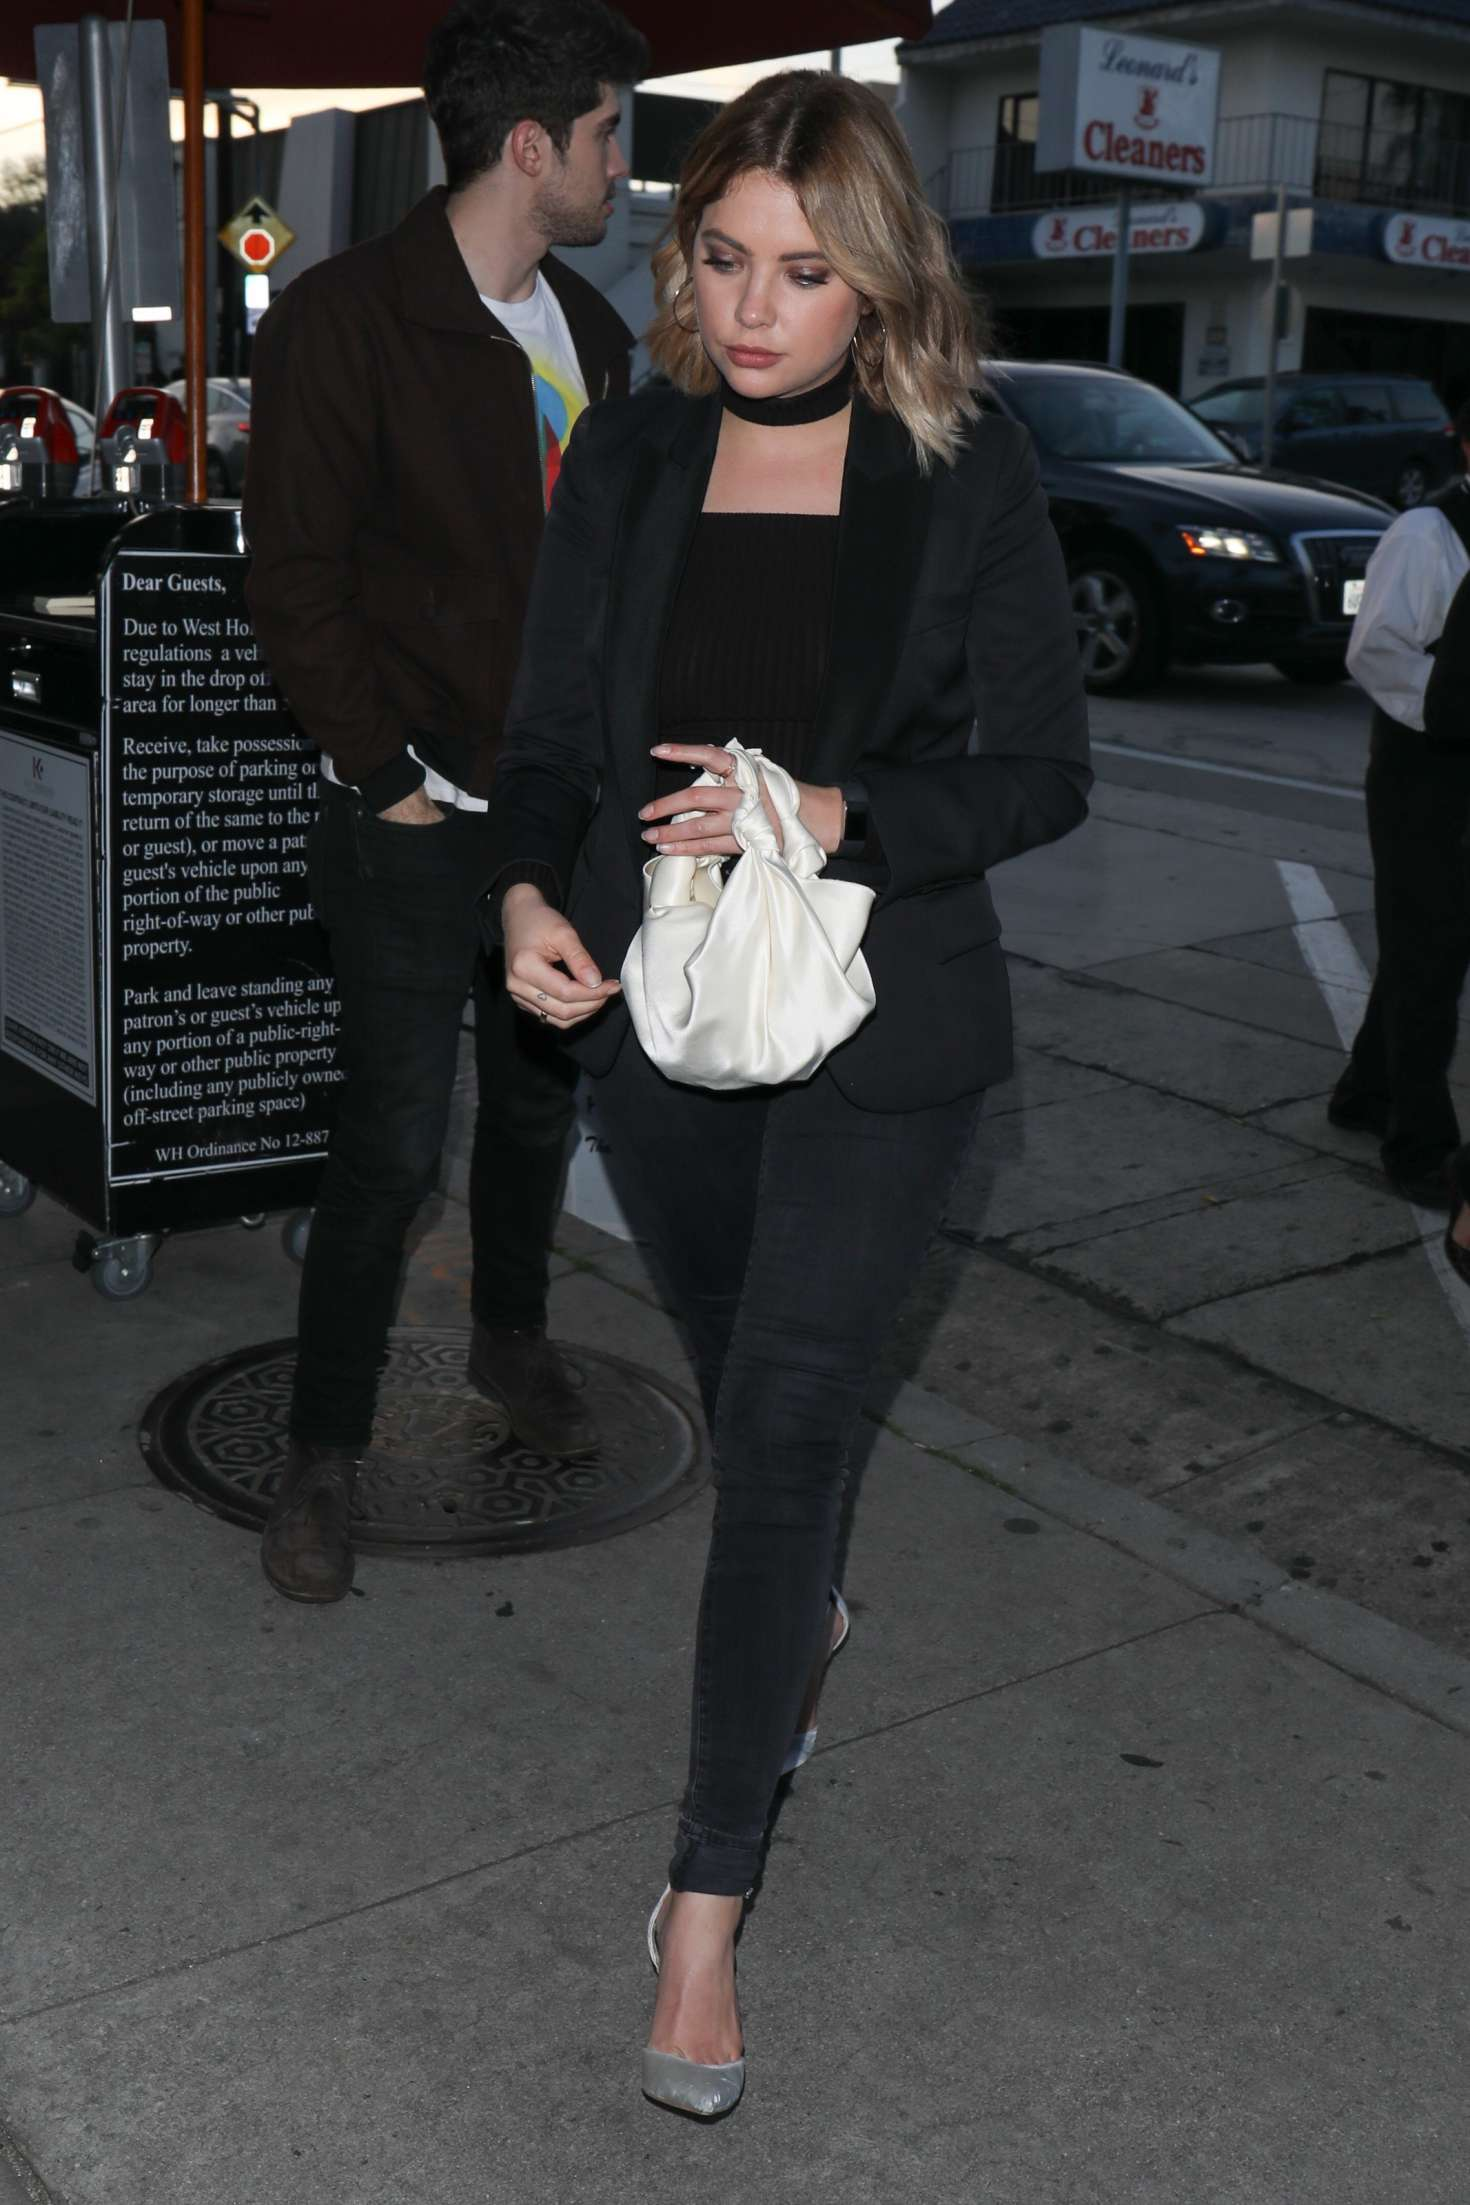 Ashley benson arriving to catch la for dinner in la nude (72 photo), Sexy Celebrites pictures